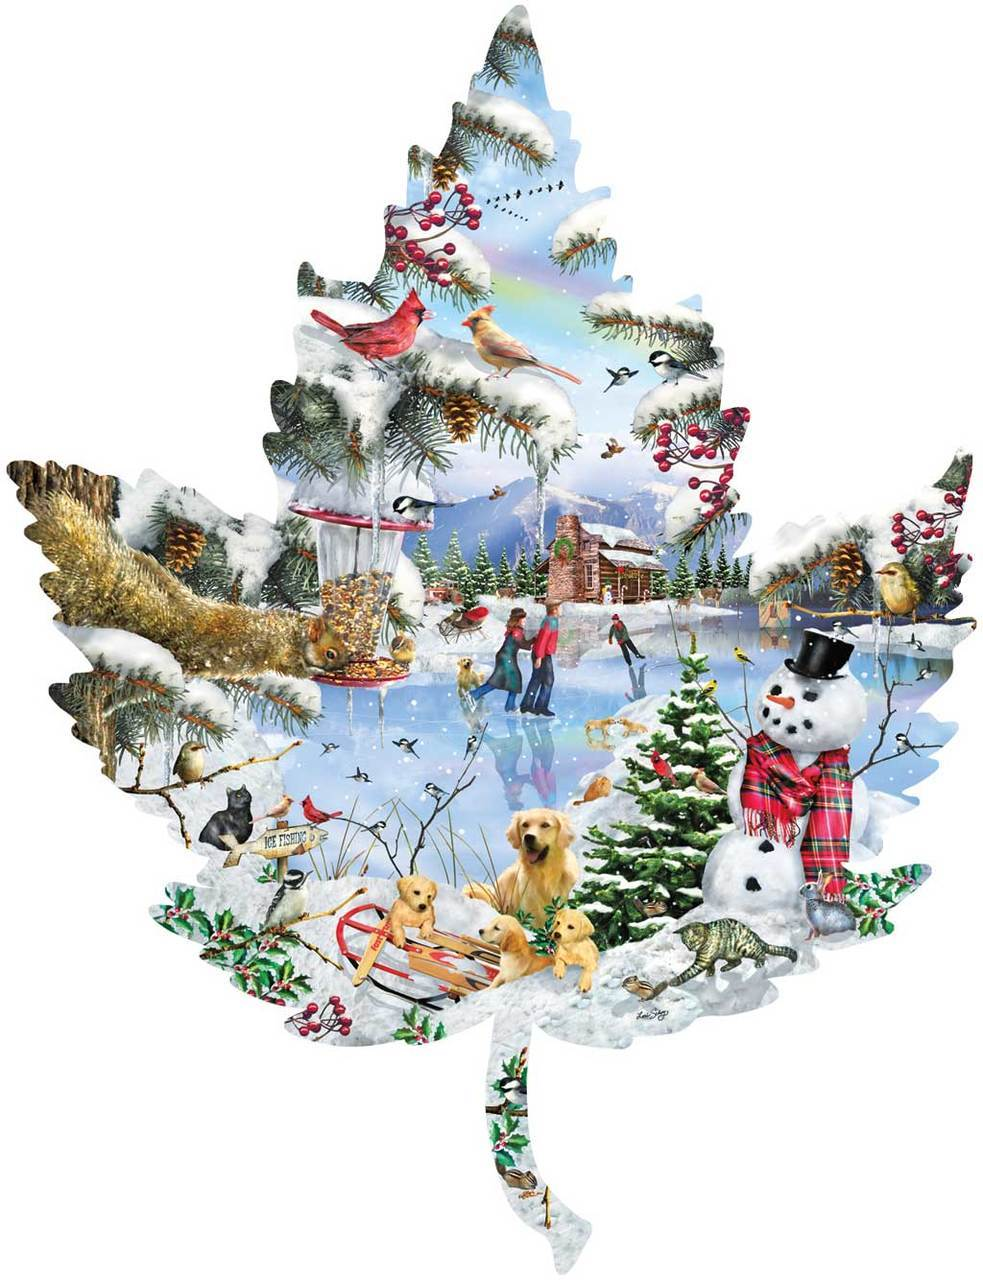 Winter on the Lake - 1000pc Shaped Jigsaw Puzzle By Sunsout